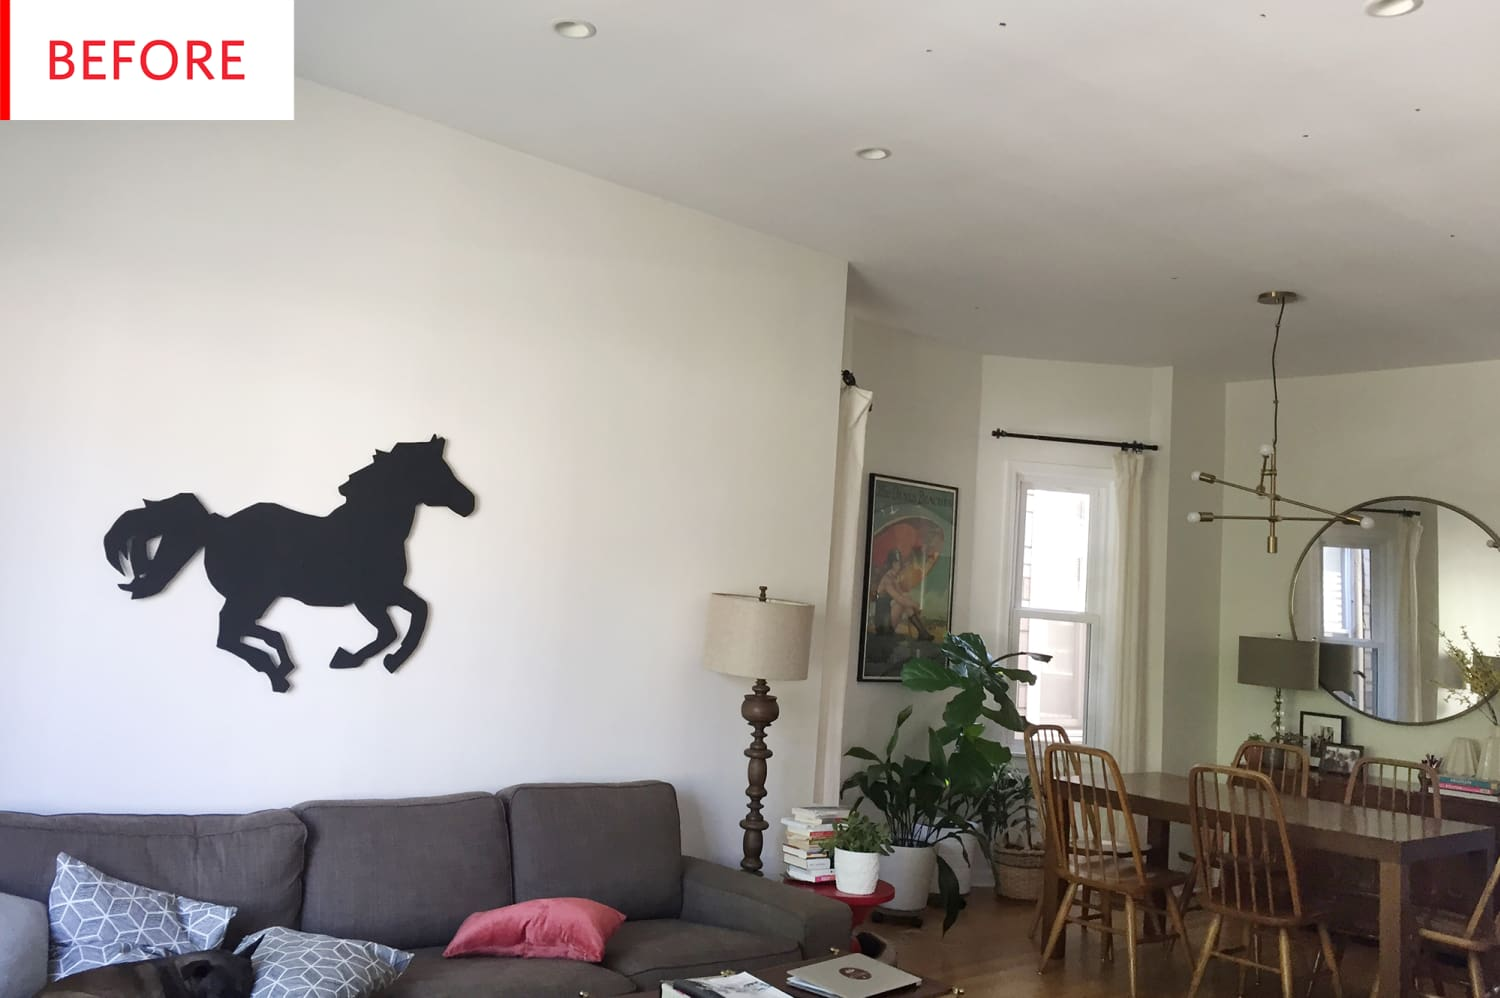 Before and After: This Living Room is All About the New Ceiling